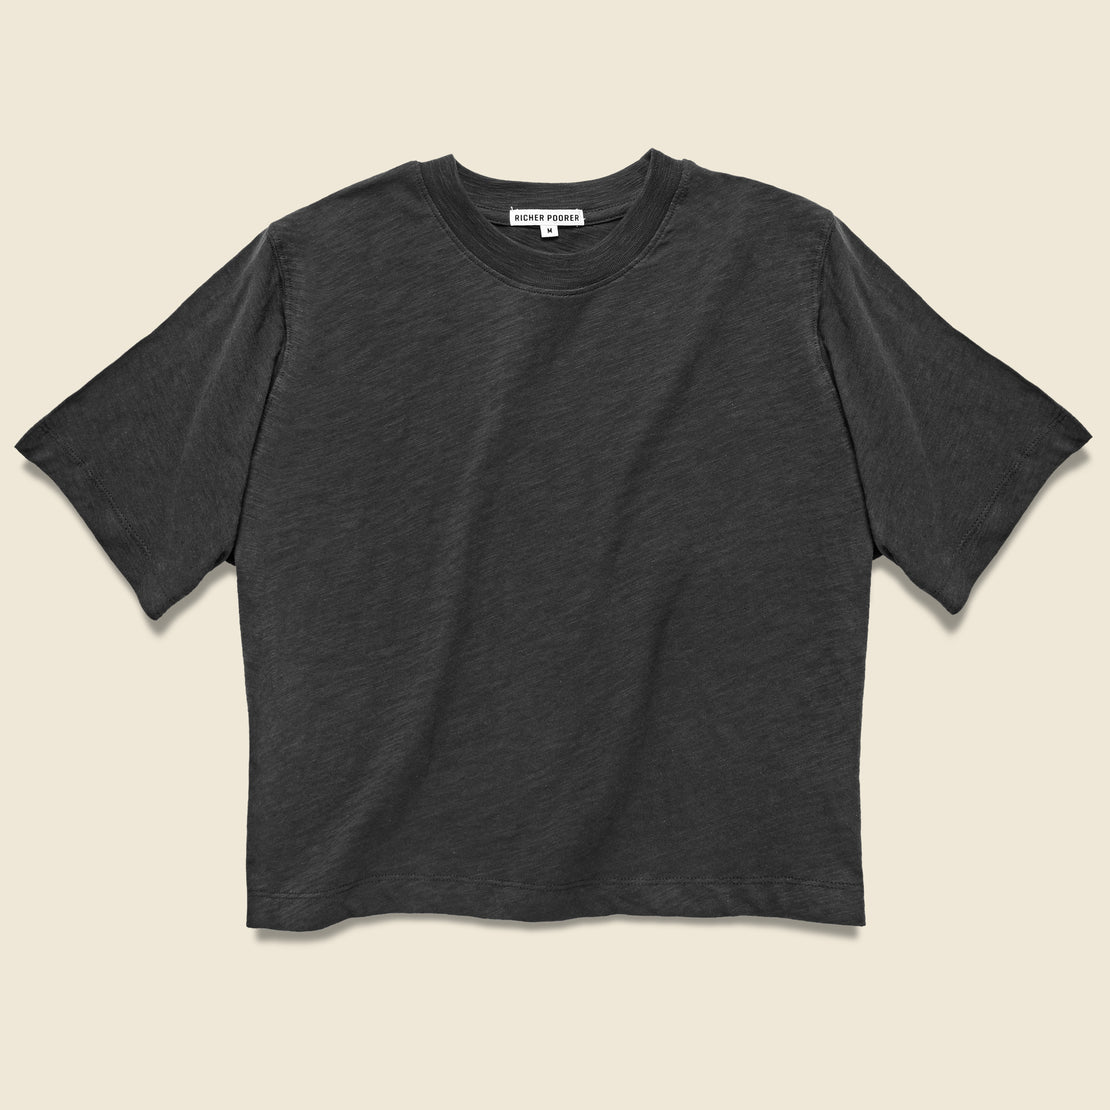 Richer Poorer Grown Up Crop Tee - Black